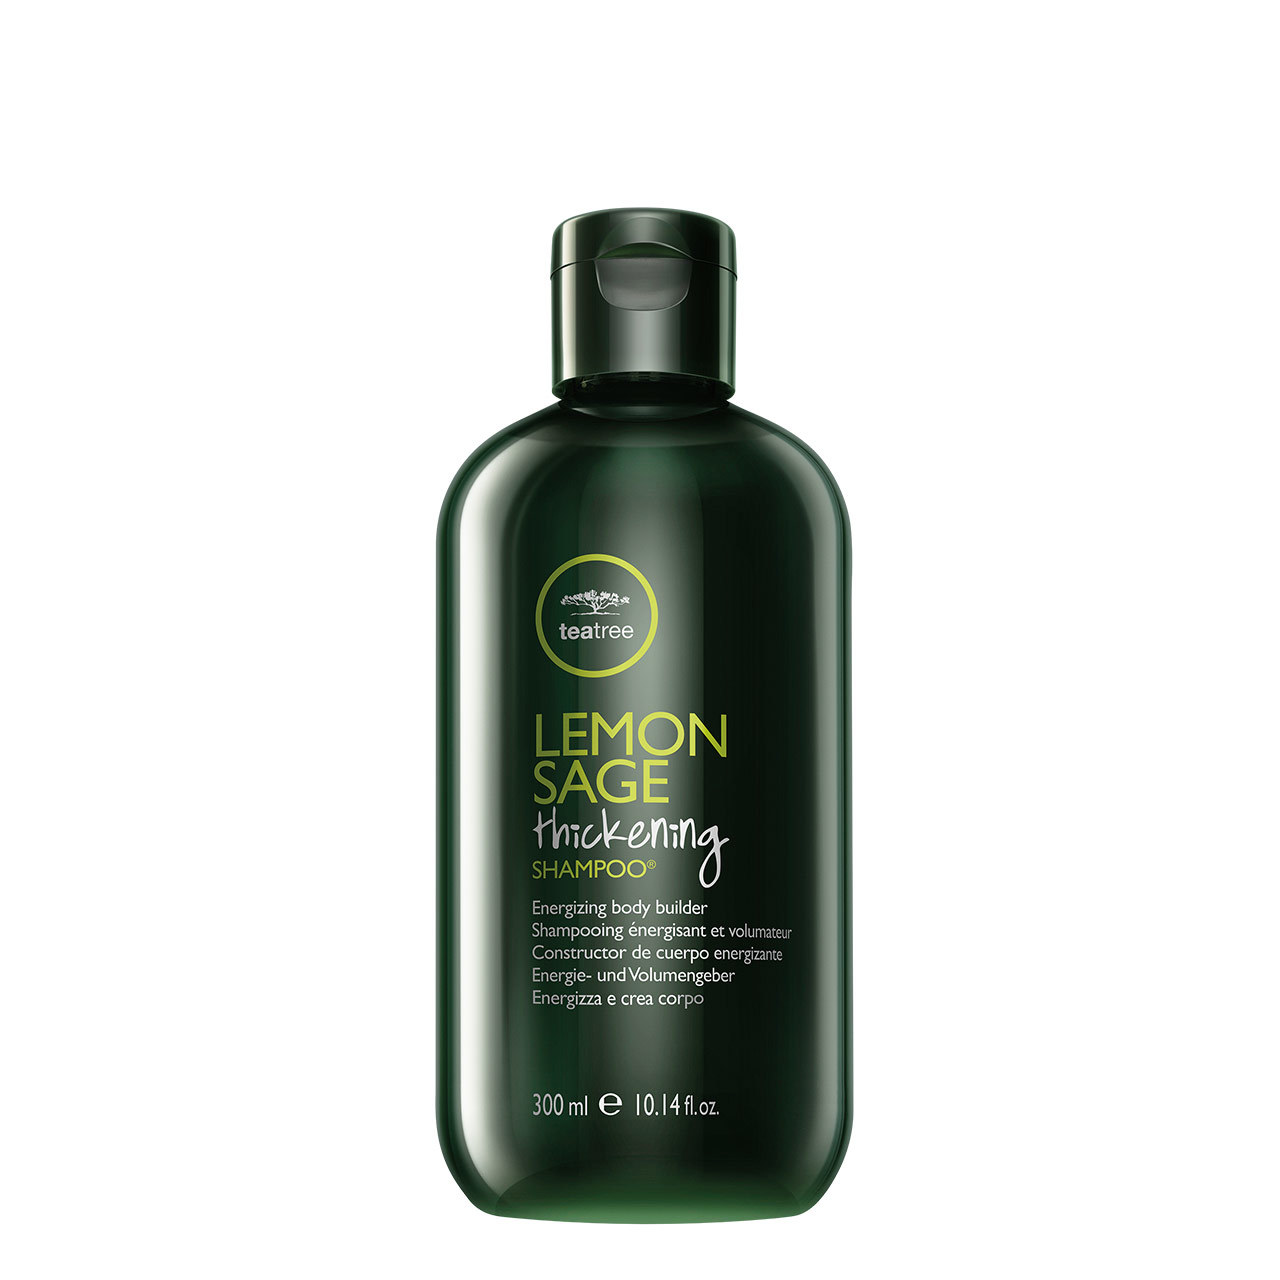 Lemon Sage Thickening Shampoo® obsah (ml): 300ml